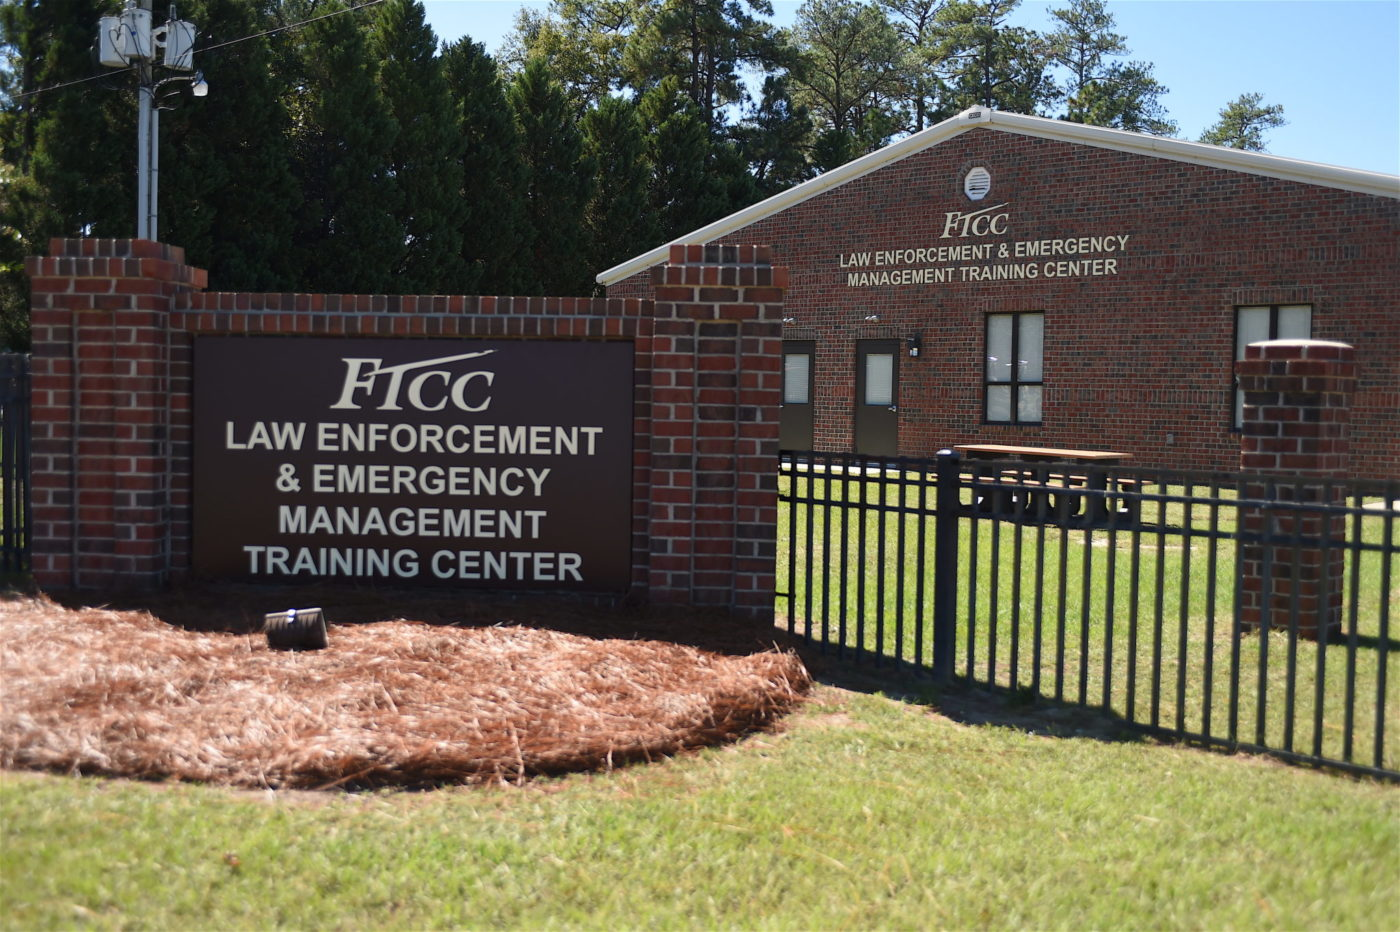 FTCC Law Enforcement and Emergency Management Training Center